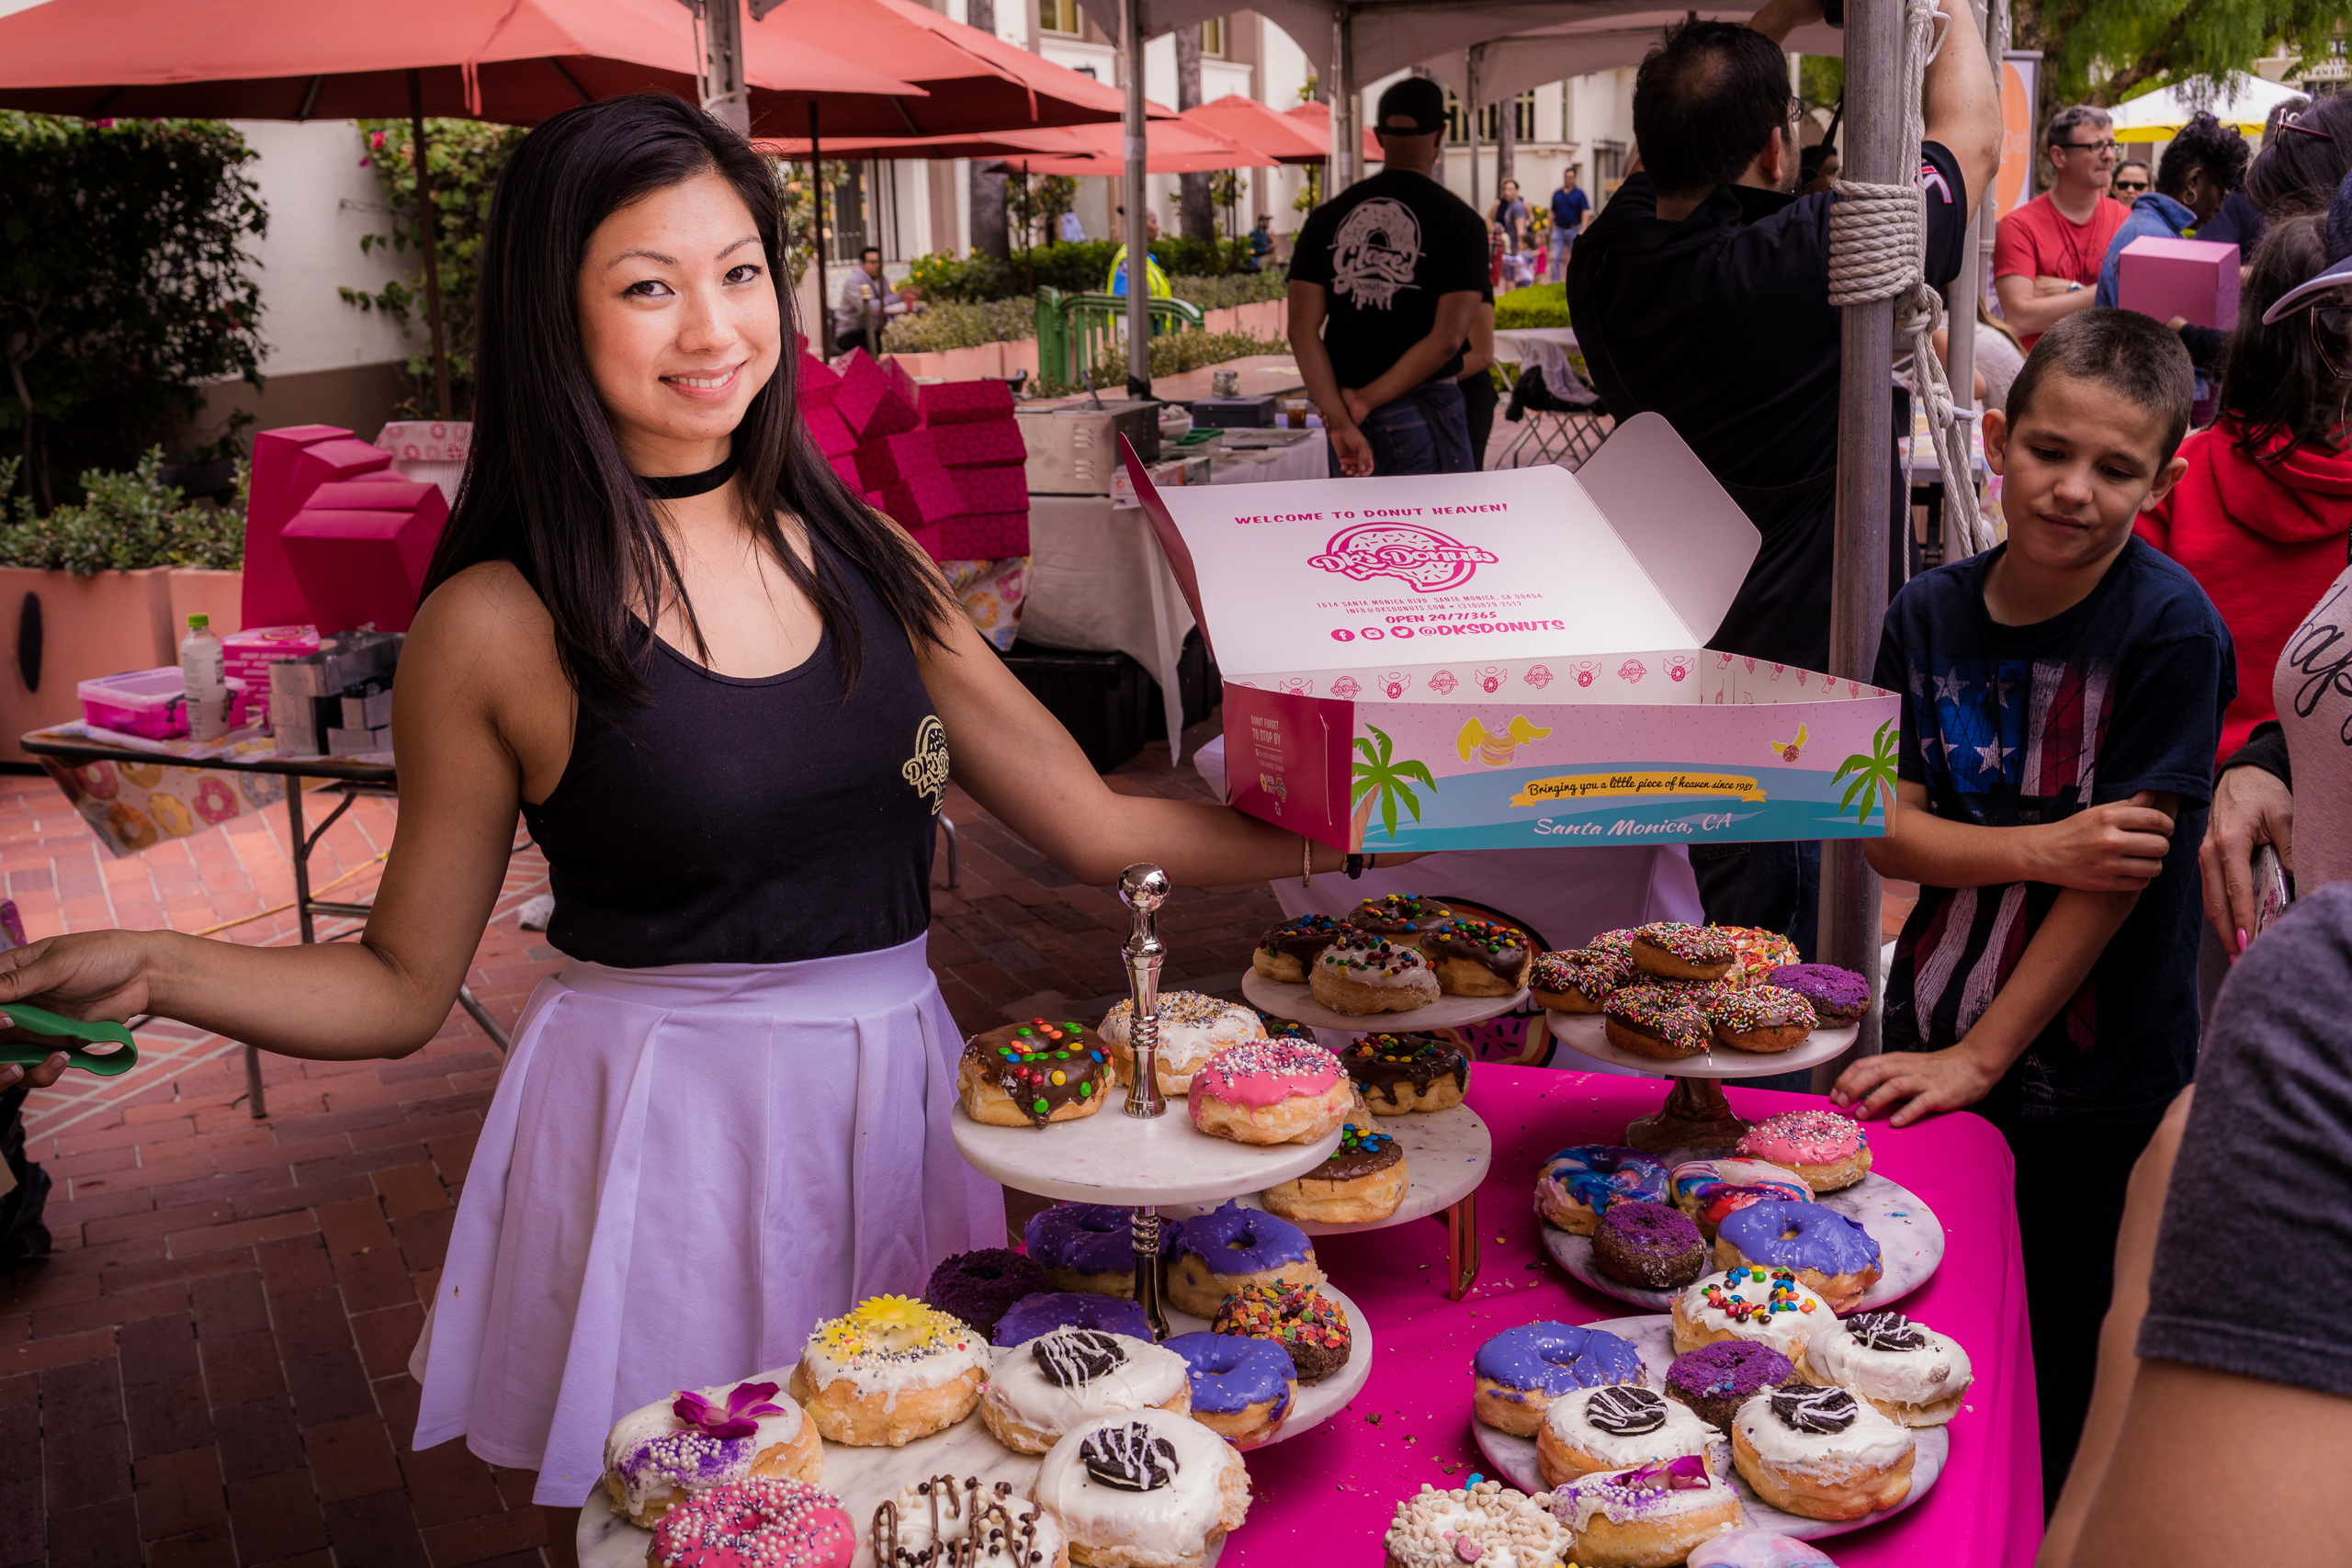 Mayly Tao, DK's Donuts heiress serves donuts from a table overflowing with many and varied brightly colored donuts at Union Station's  DTLA Donut Fest